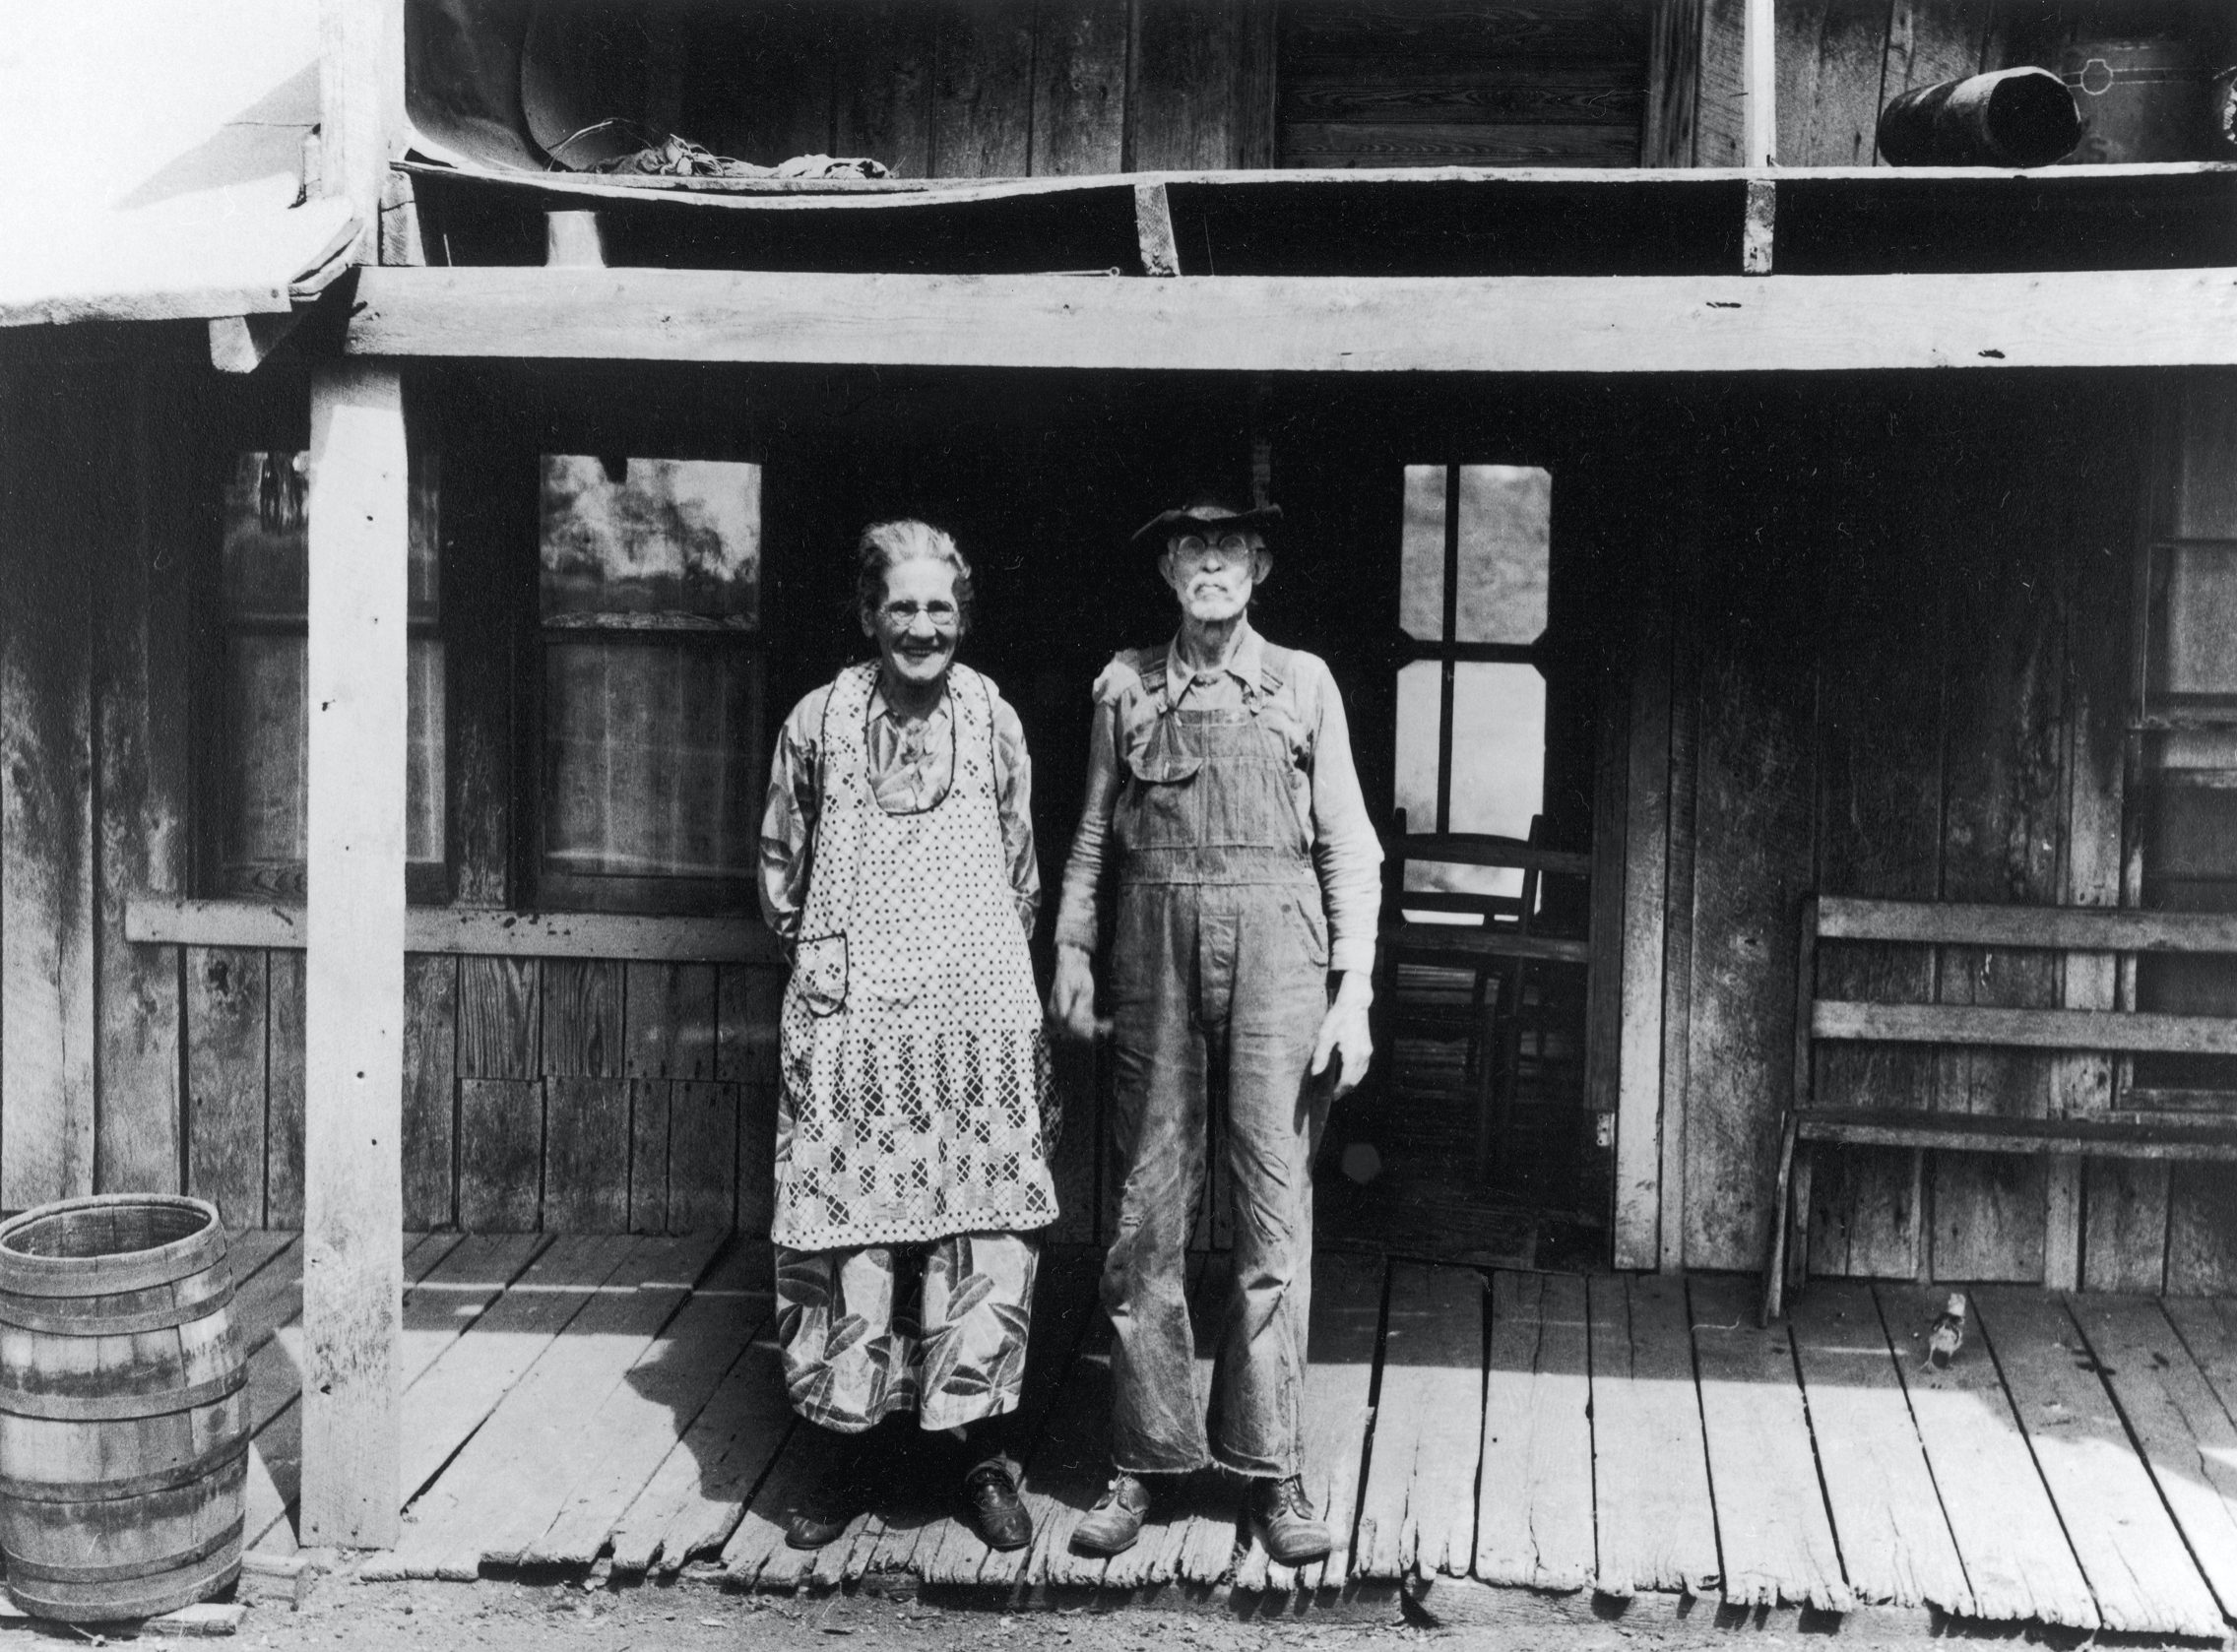 Sharecroppers standing on porch of shack